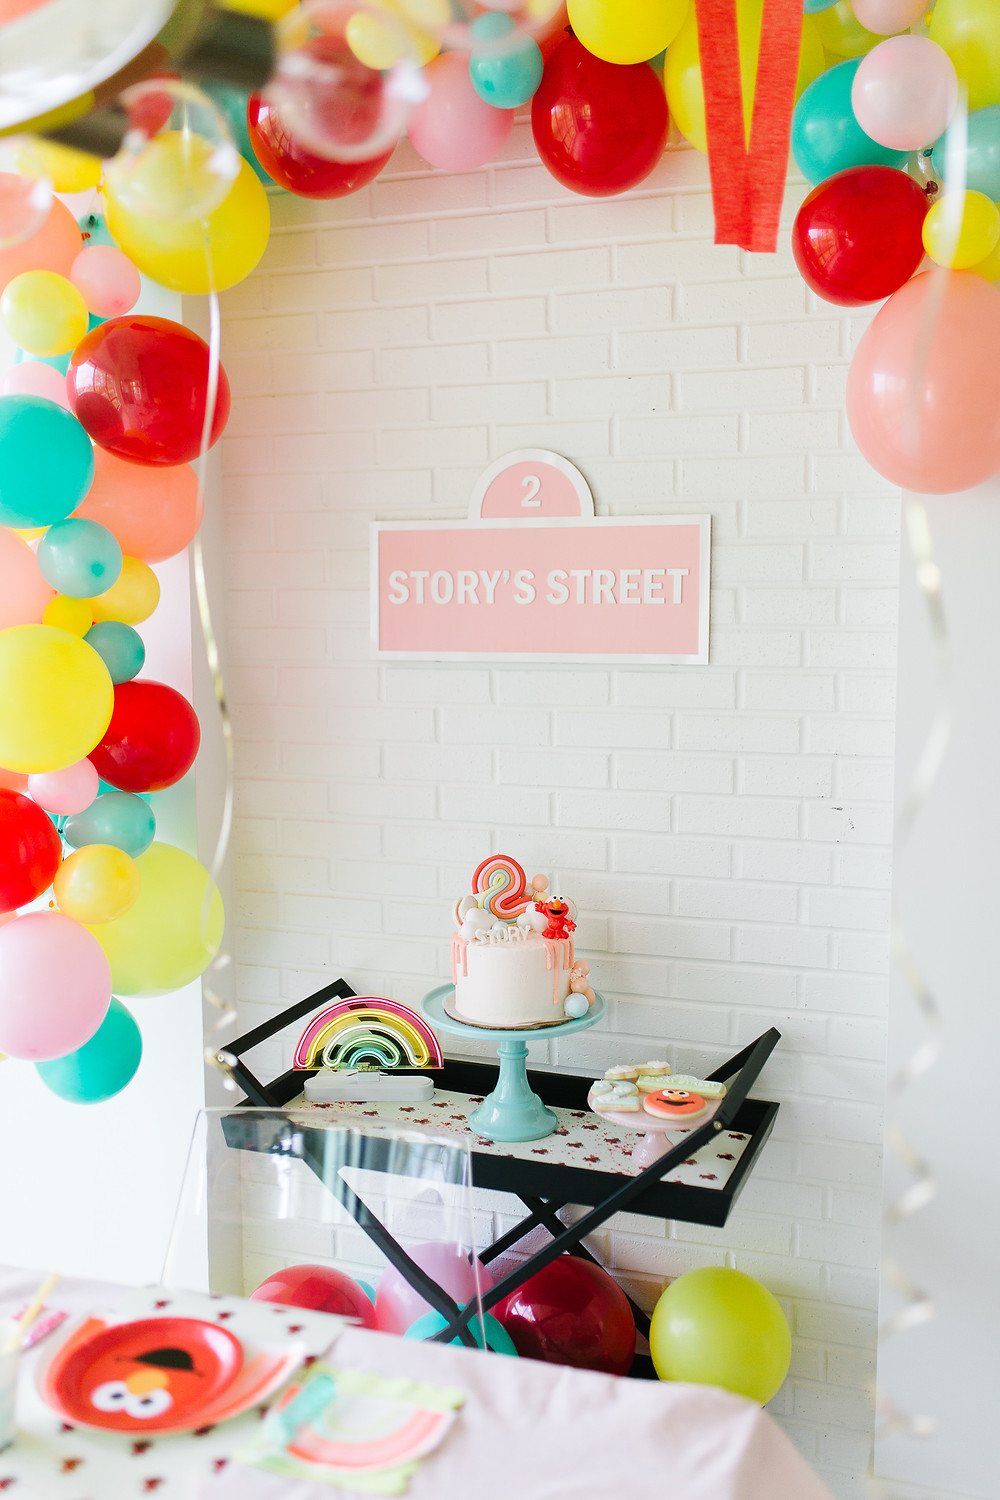 A Sesame Street Elmo birthday party with colourful balloons, pink Elmo birthday cake, Elmo cookies, rainbows, Elmo plates and pink signage.